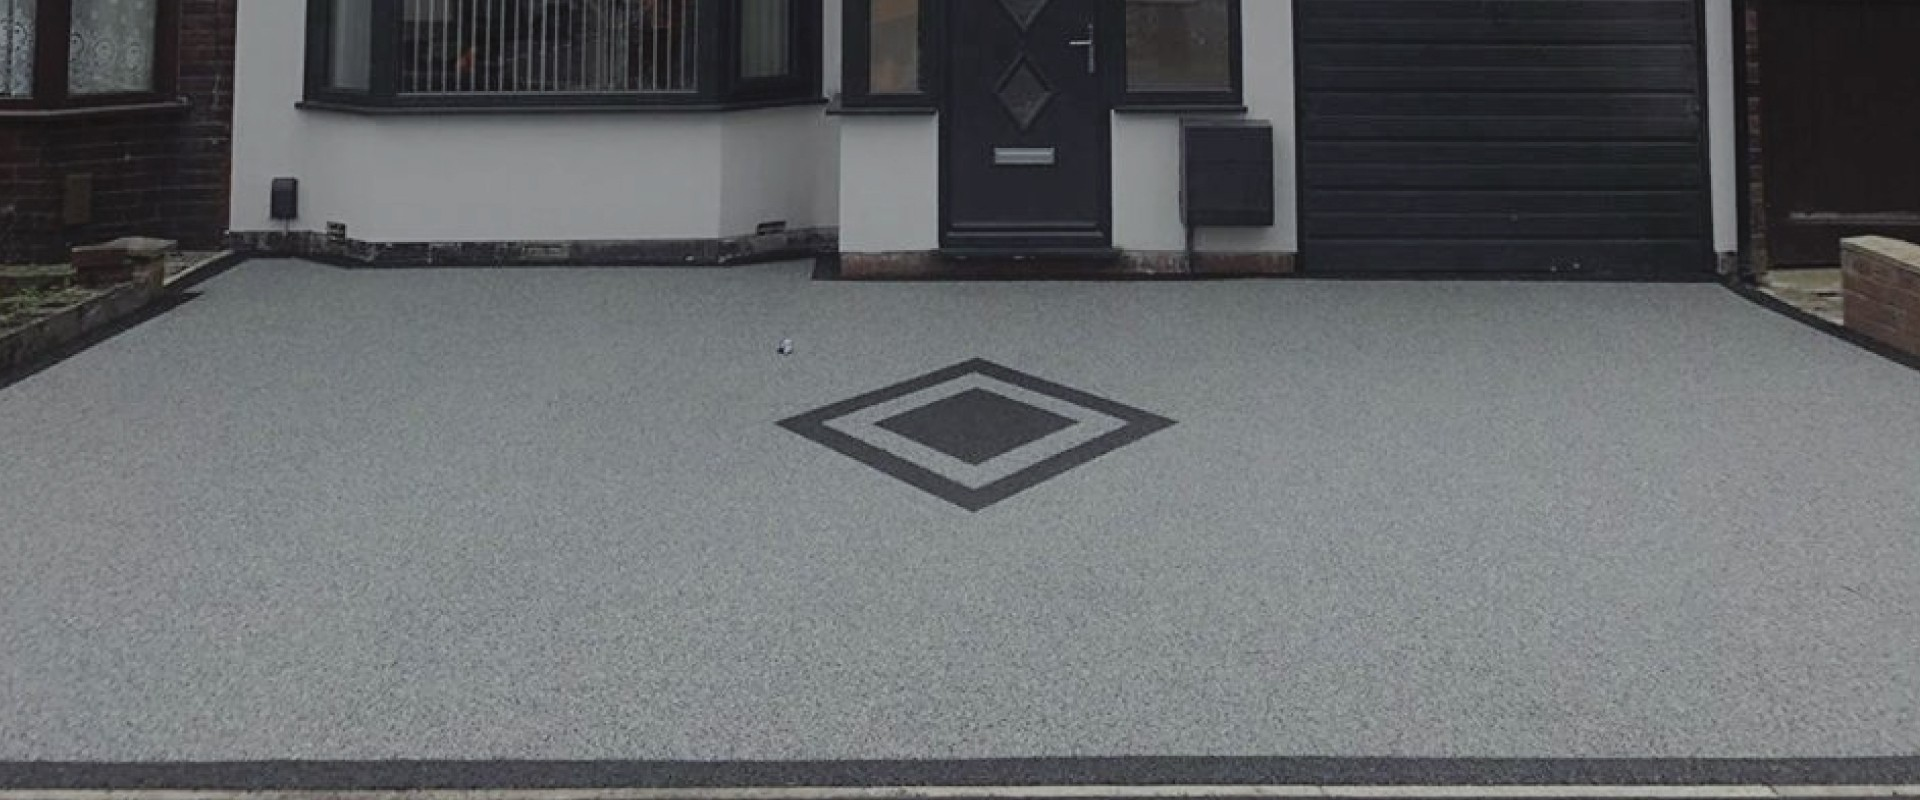 RESIN DRIVEWAYS | TARMAC DRIVEWAYS | DRIVEWAY RESURFACING | POT HOLE REPAIRS resindrive